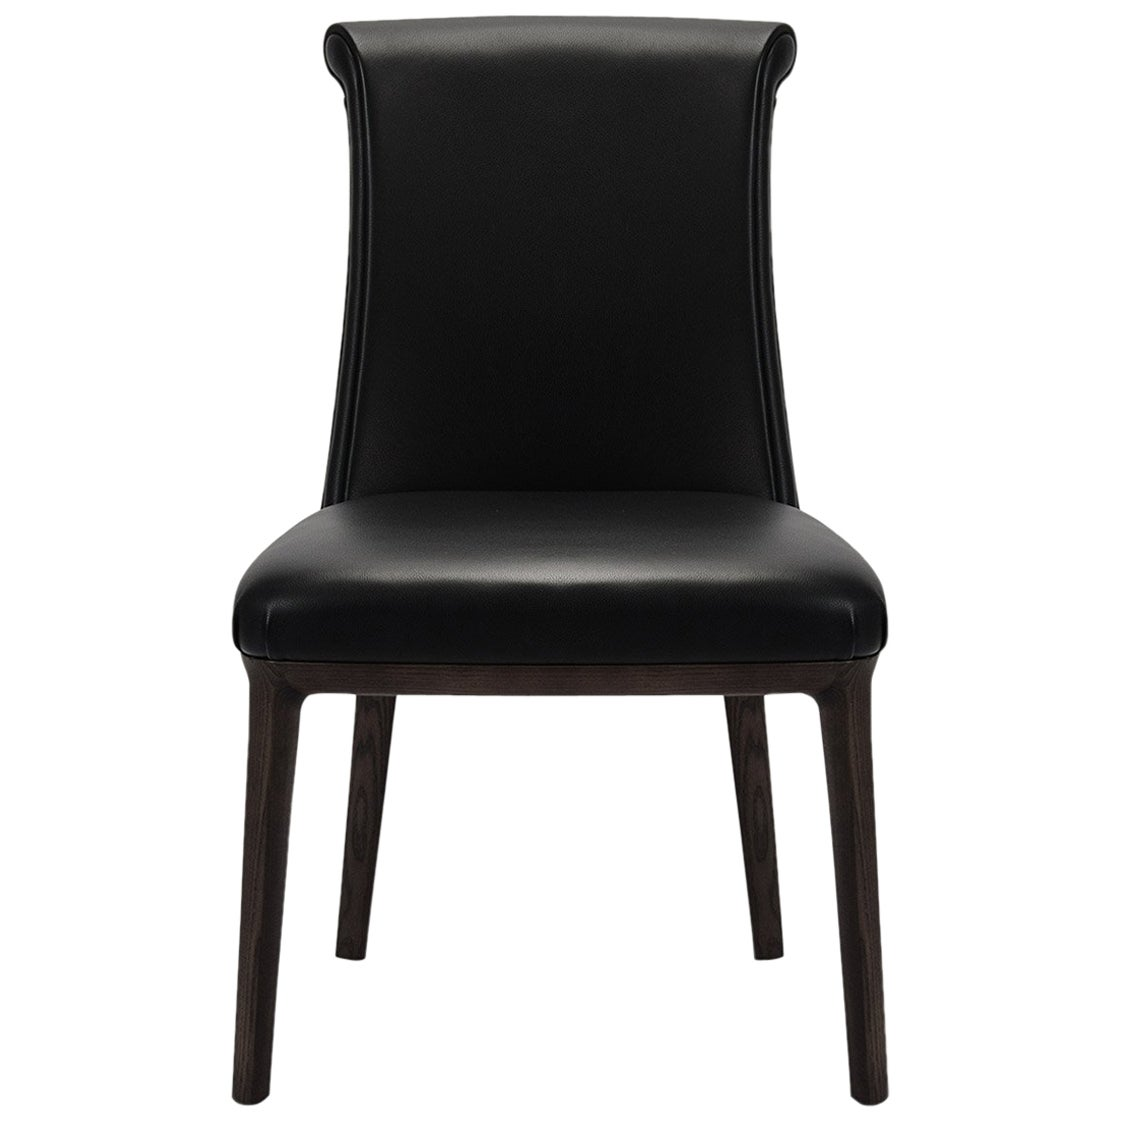 Black Leather Diva Dining Chair, Poltrona Frau